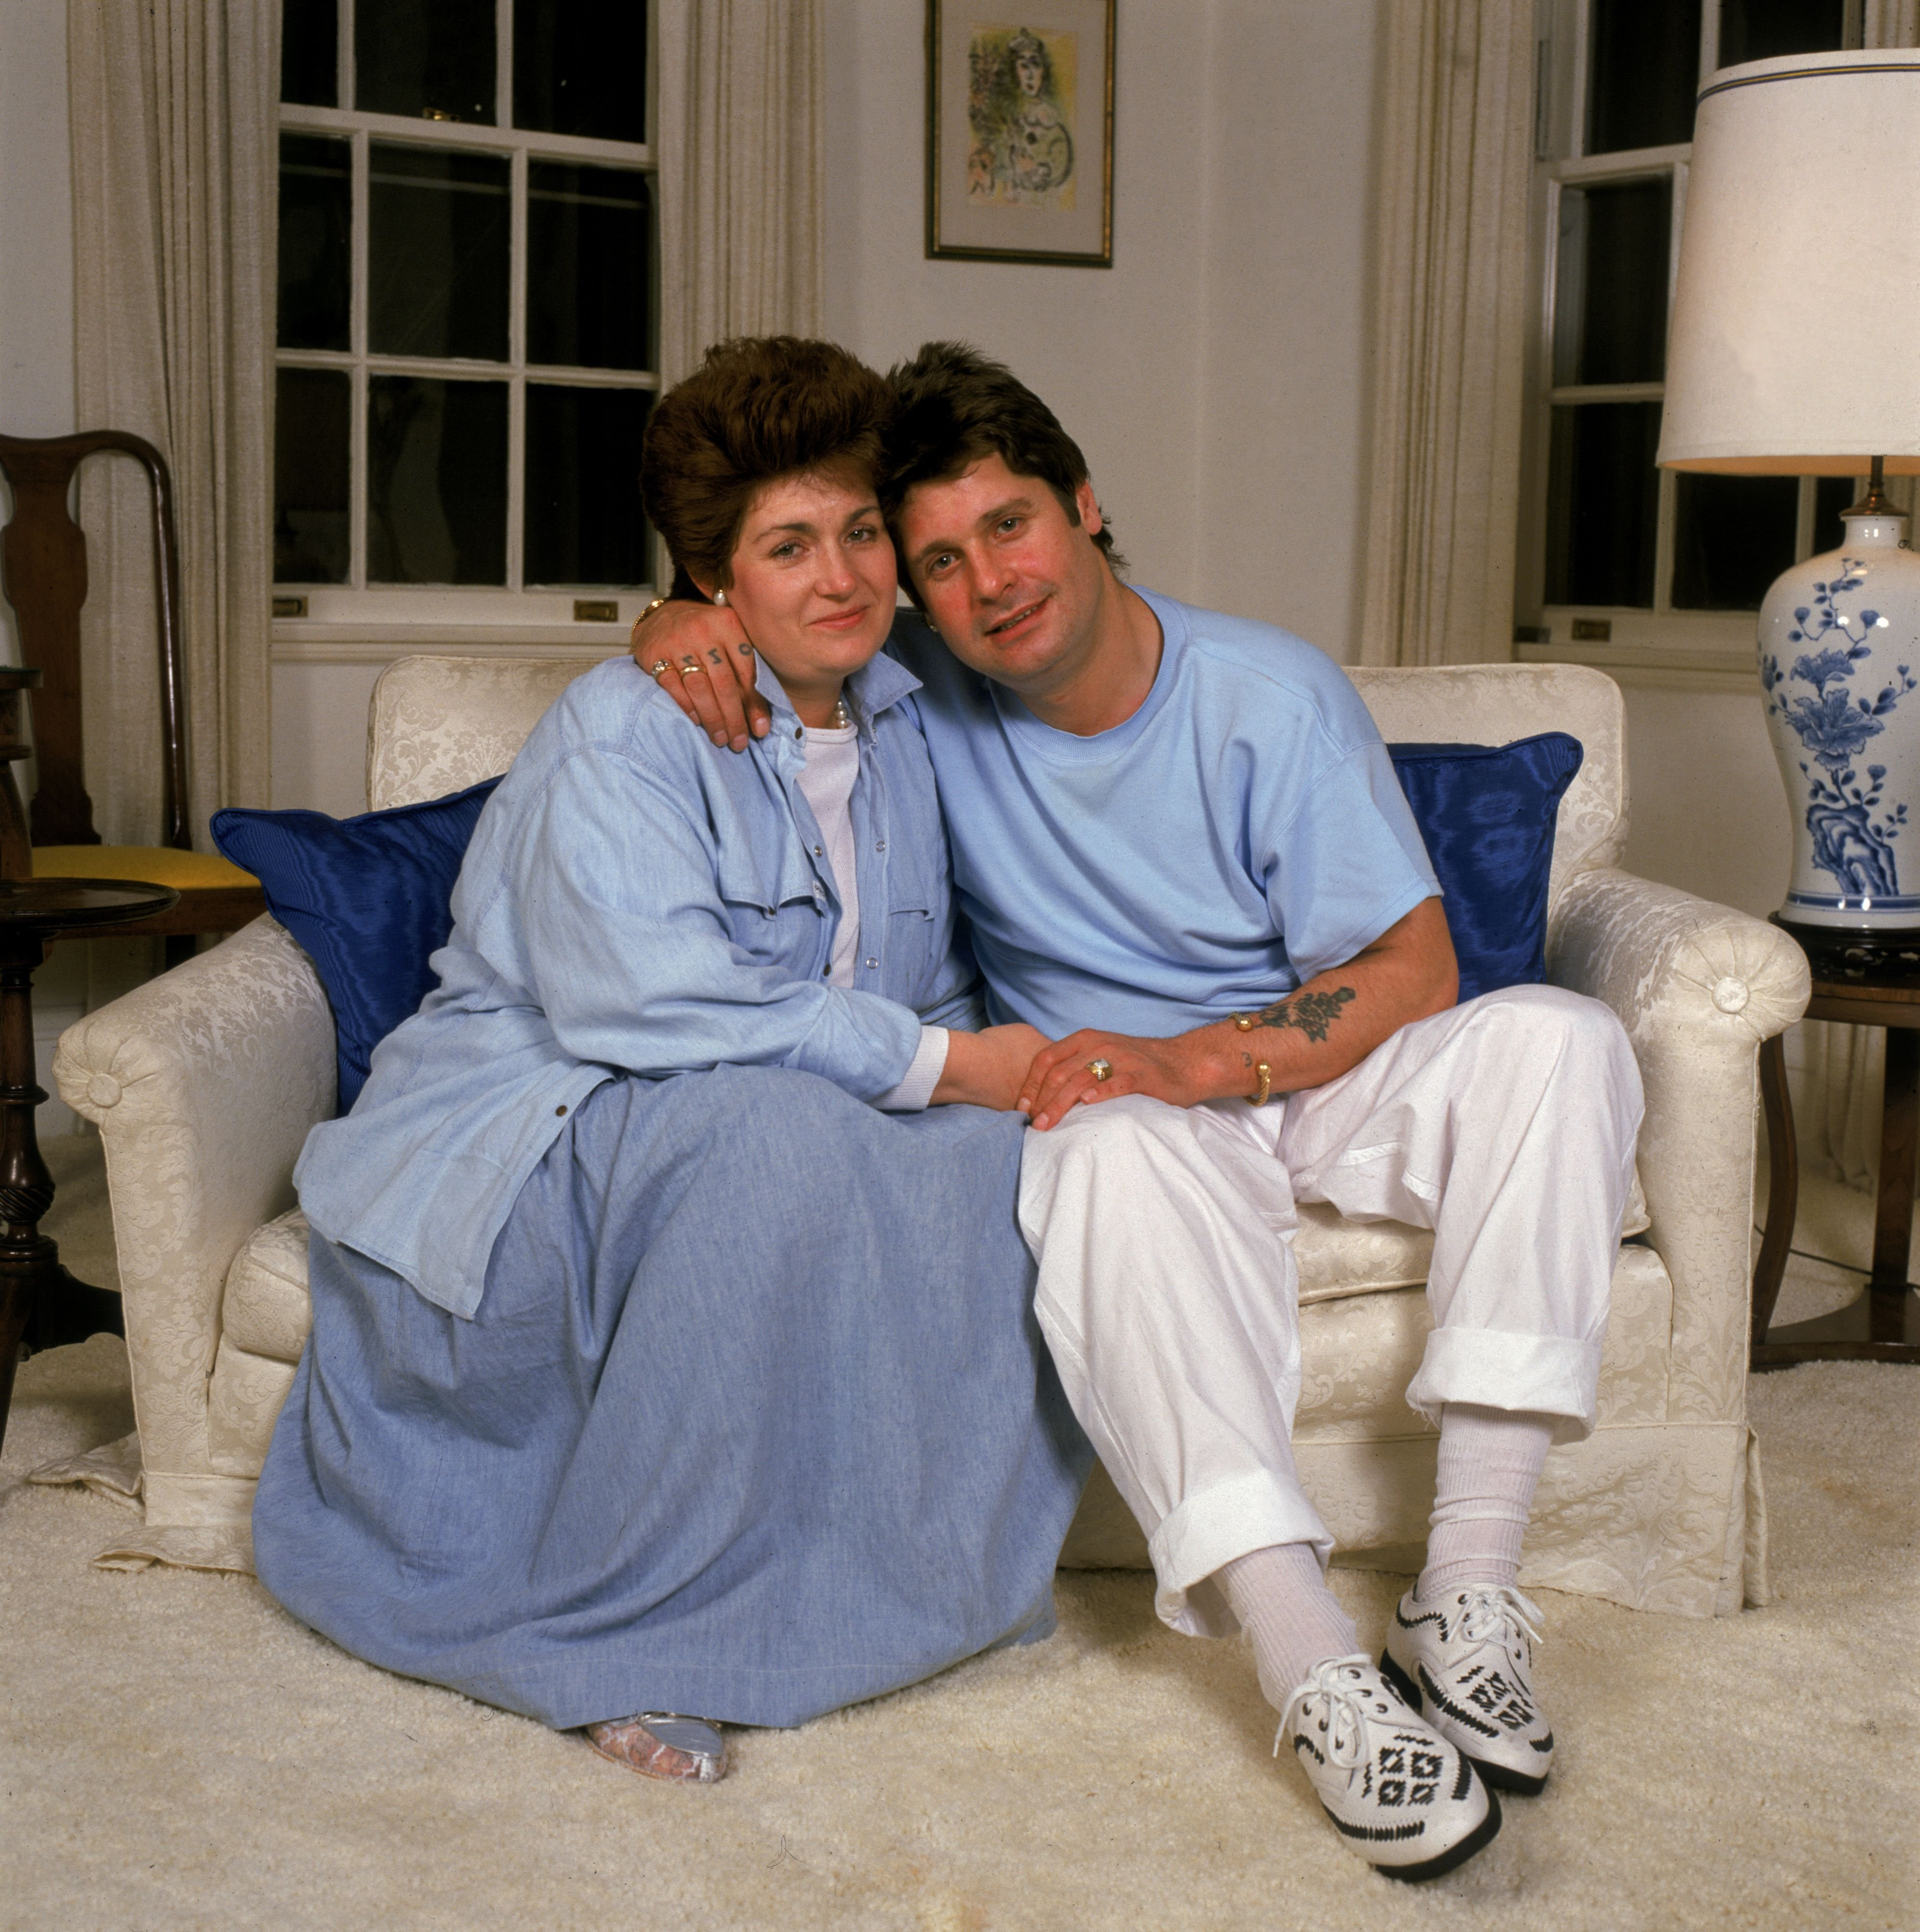 Ozzy and Sharon Osbourne in the 90s | Source: Getty Images